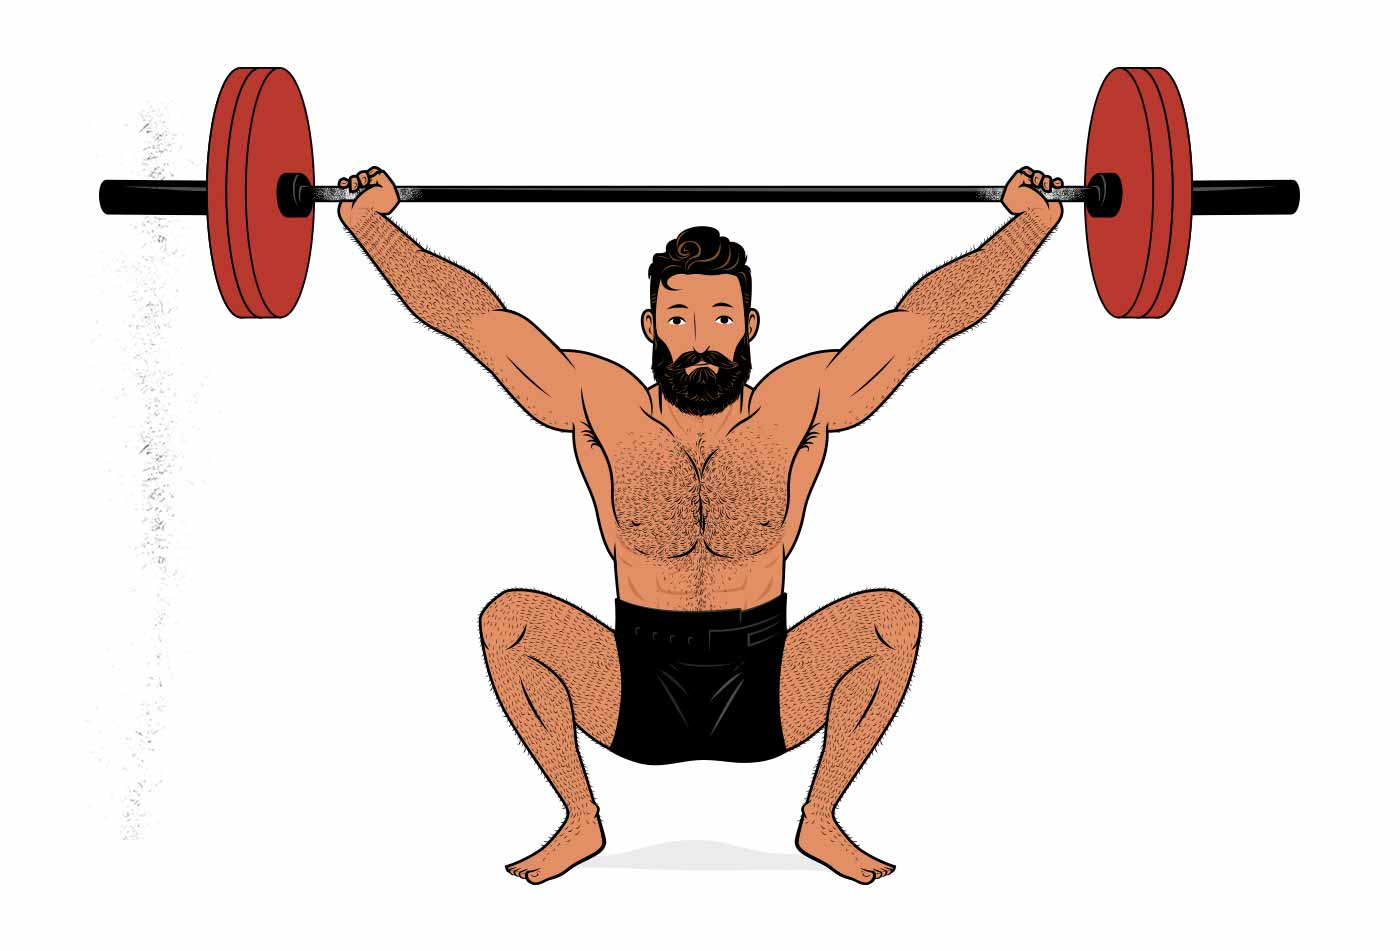 Illustration of a man doing the Olympic weightlifting snatch lift.